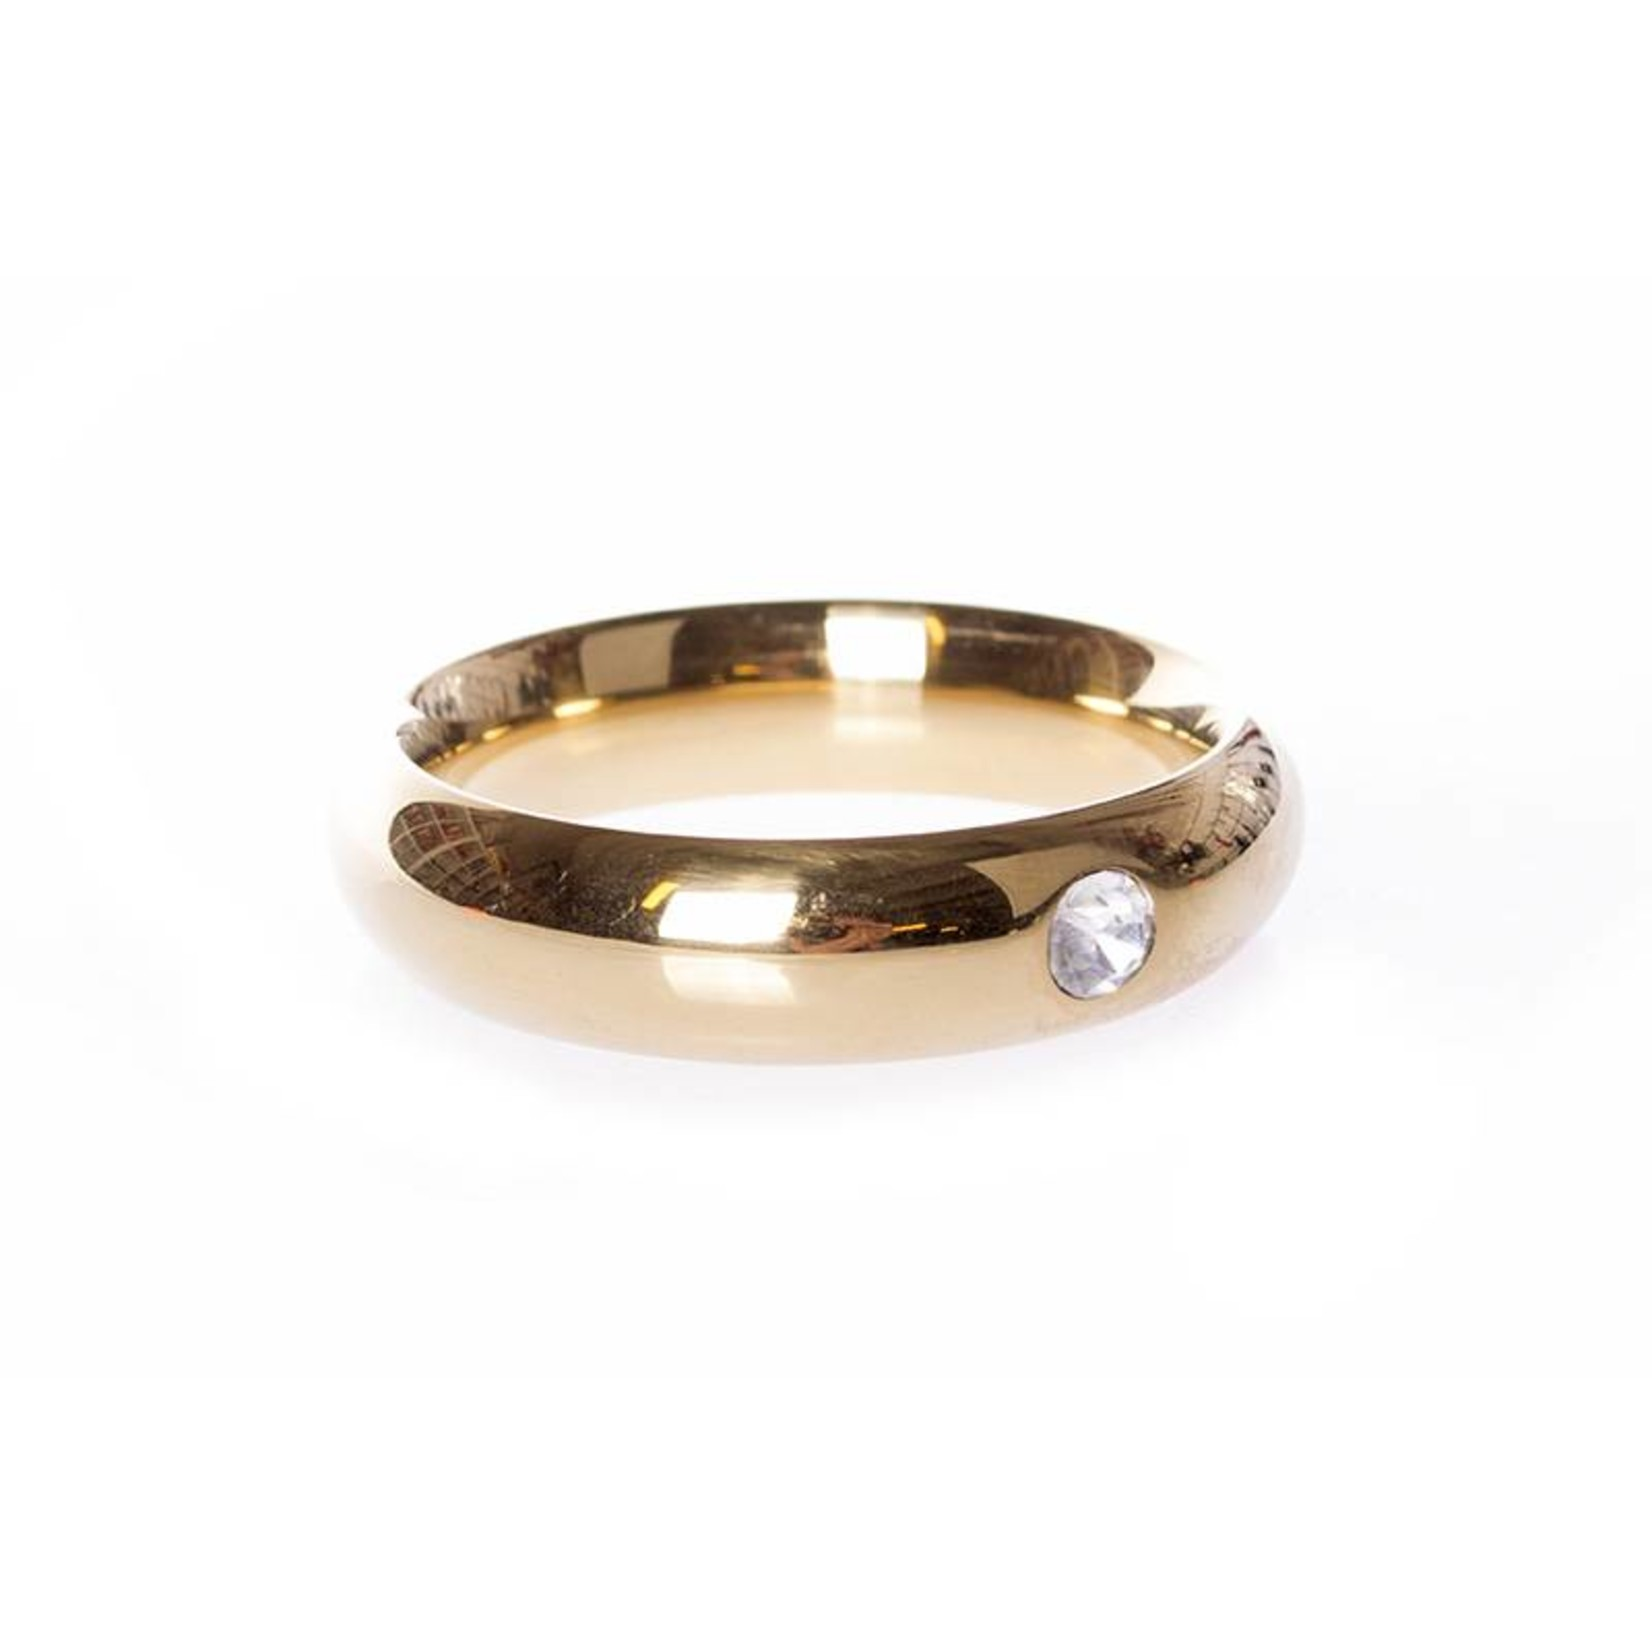 KIOTOS Steel Gold Donut Cockring with Jewel - 45 mm